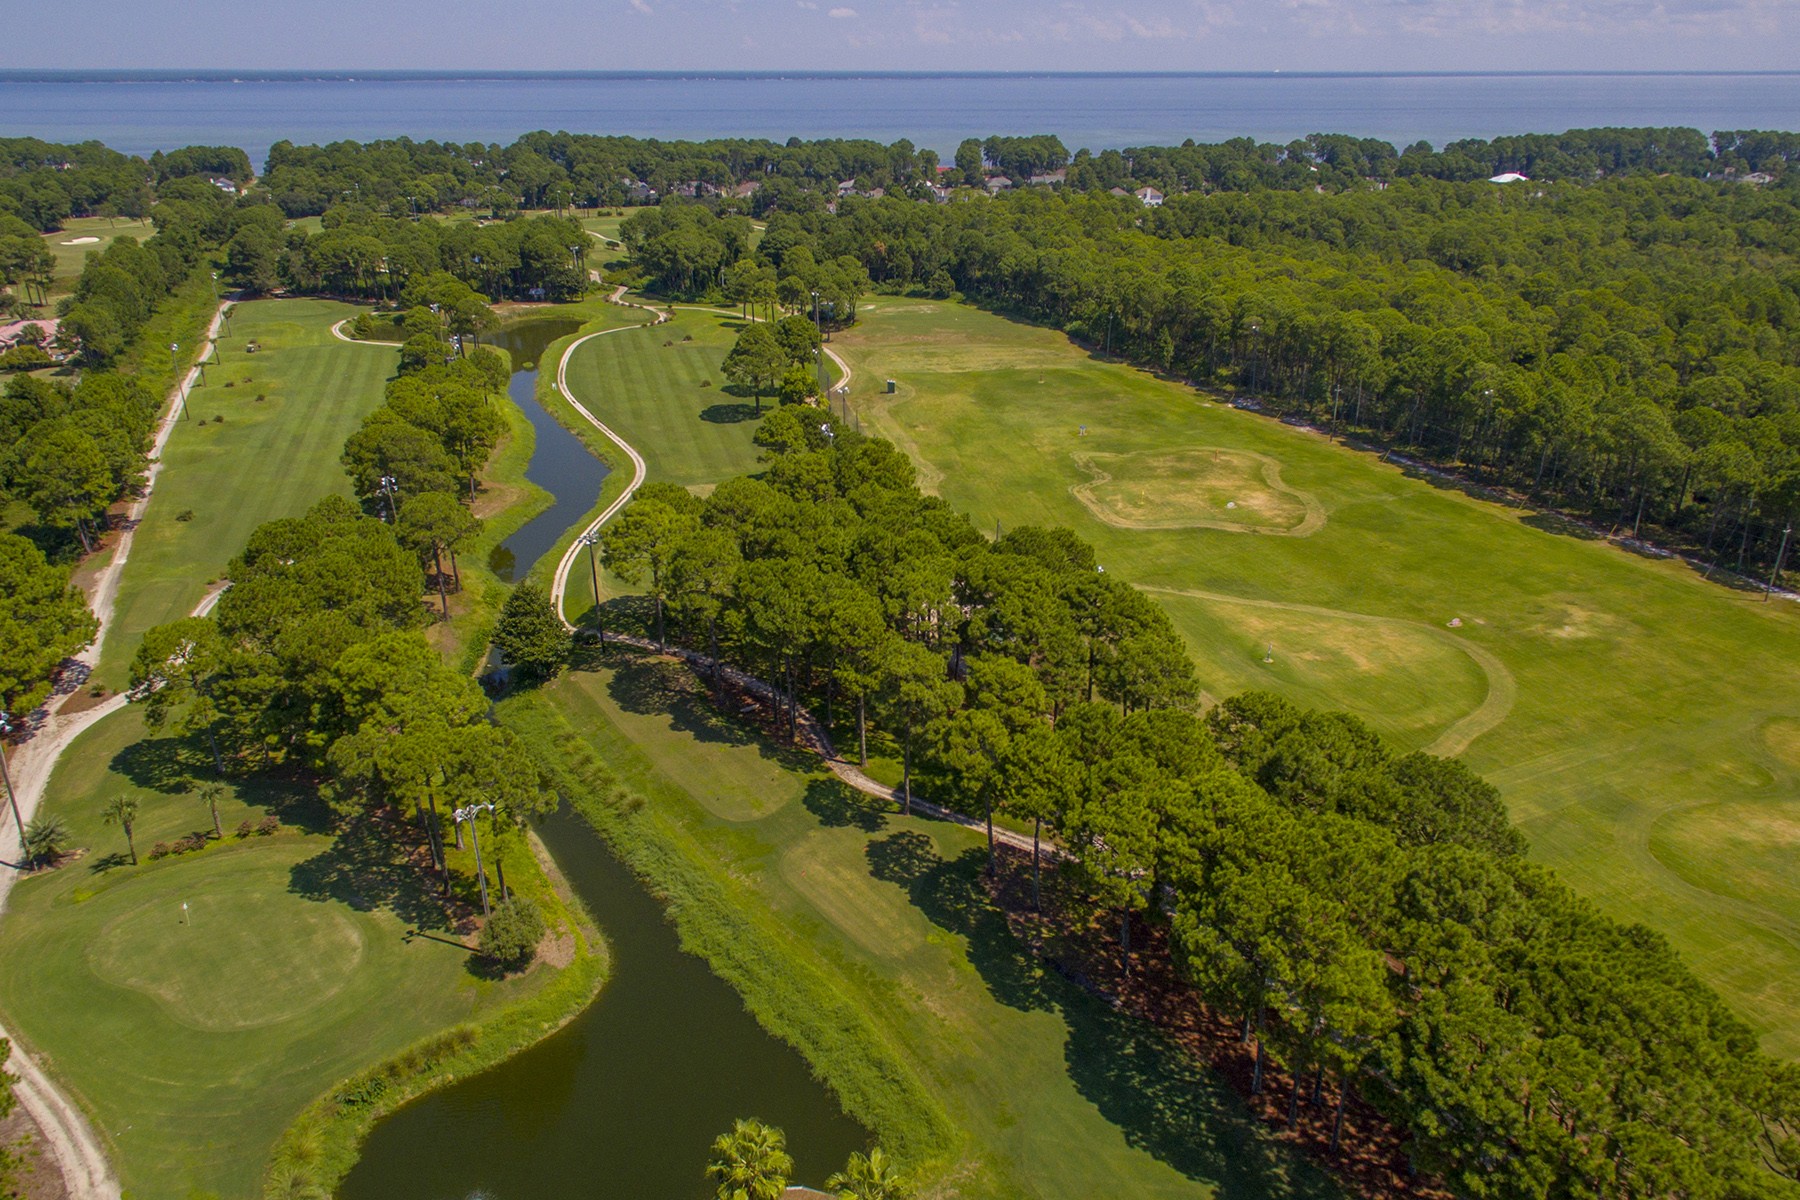 Land for Sale at RARE GOLF PROPERTY IS LAST OF ITS KIND 12958 W US Highway 98 Miramar Beach, Florida, 32550 United States